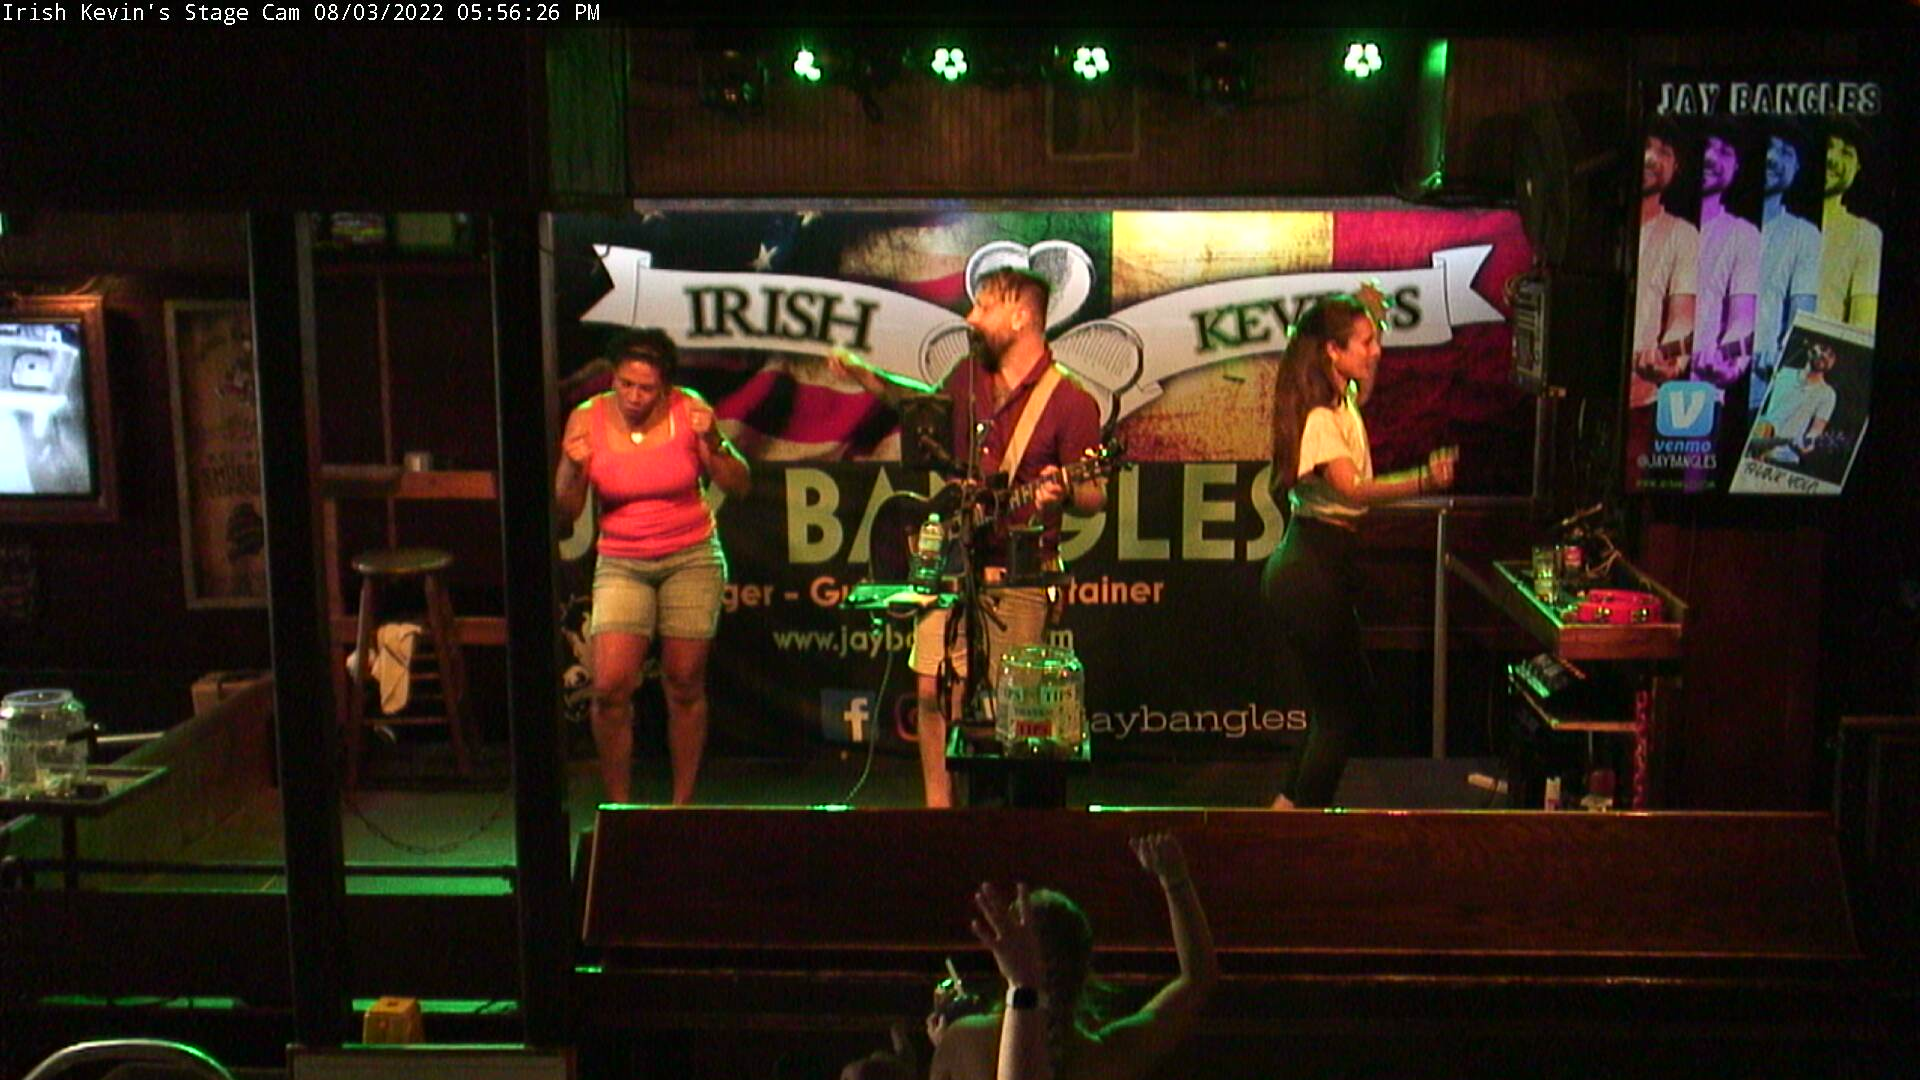 Irish Kevin's: Stage Cam